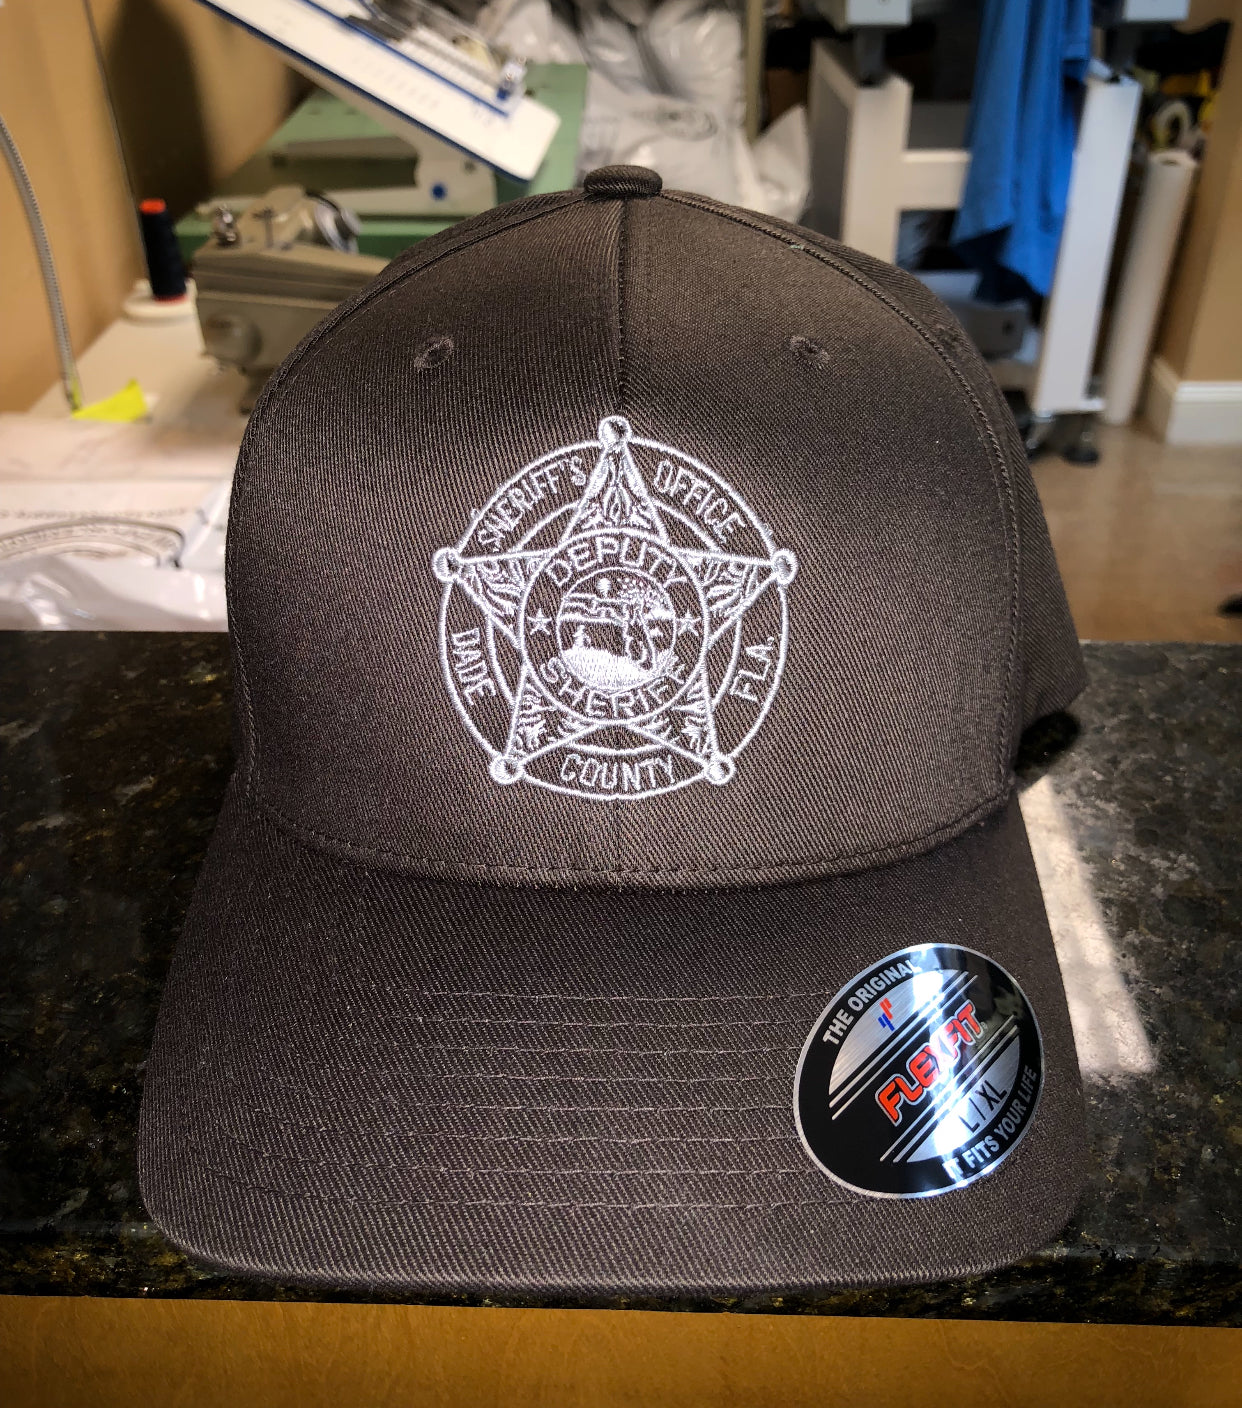 LEO Miami Dade Police Fitted Hat with Sheriff badge (Brown Hat)